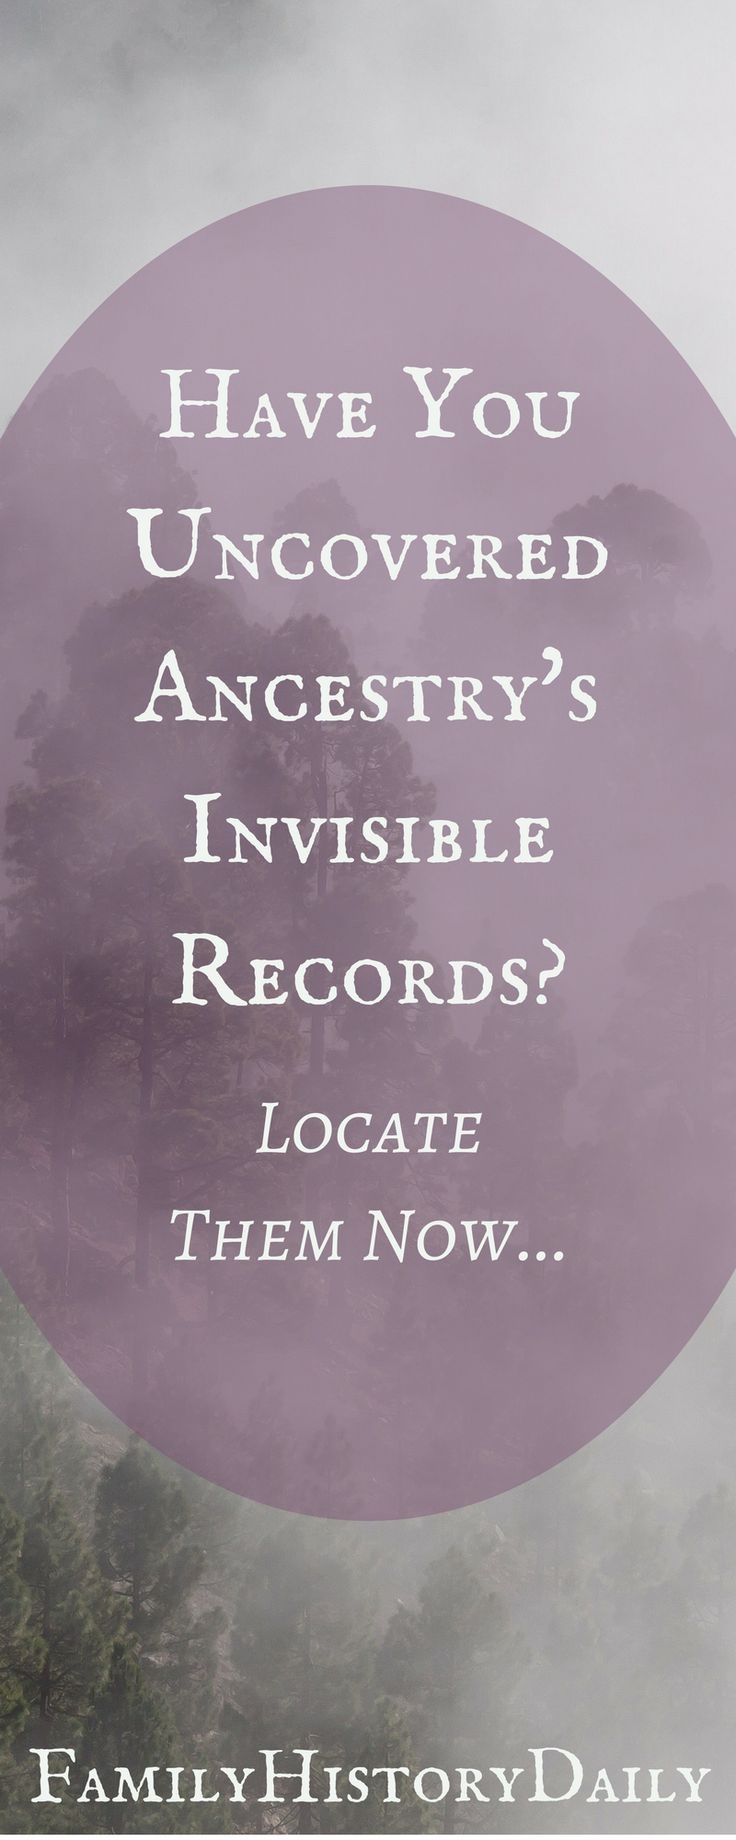 Uncovering Ancestry's 'invisible' records could boost your genealogy research and improve your family tree. #familytree #ancestry